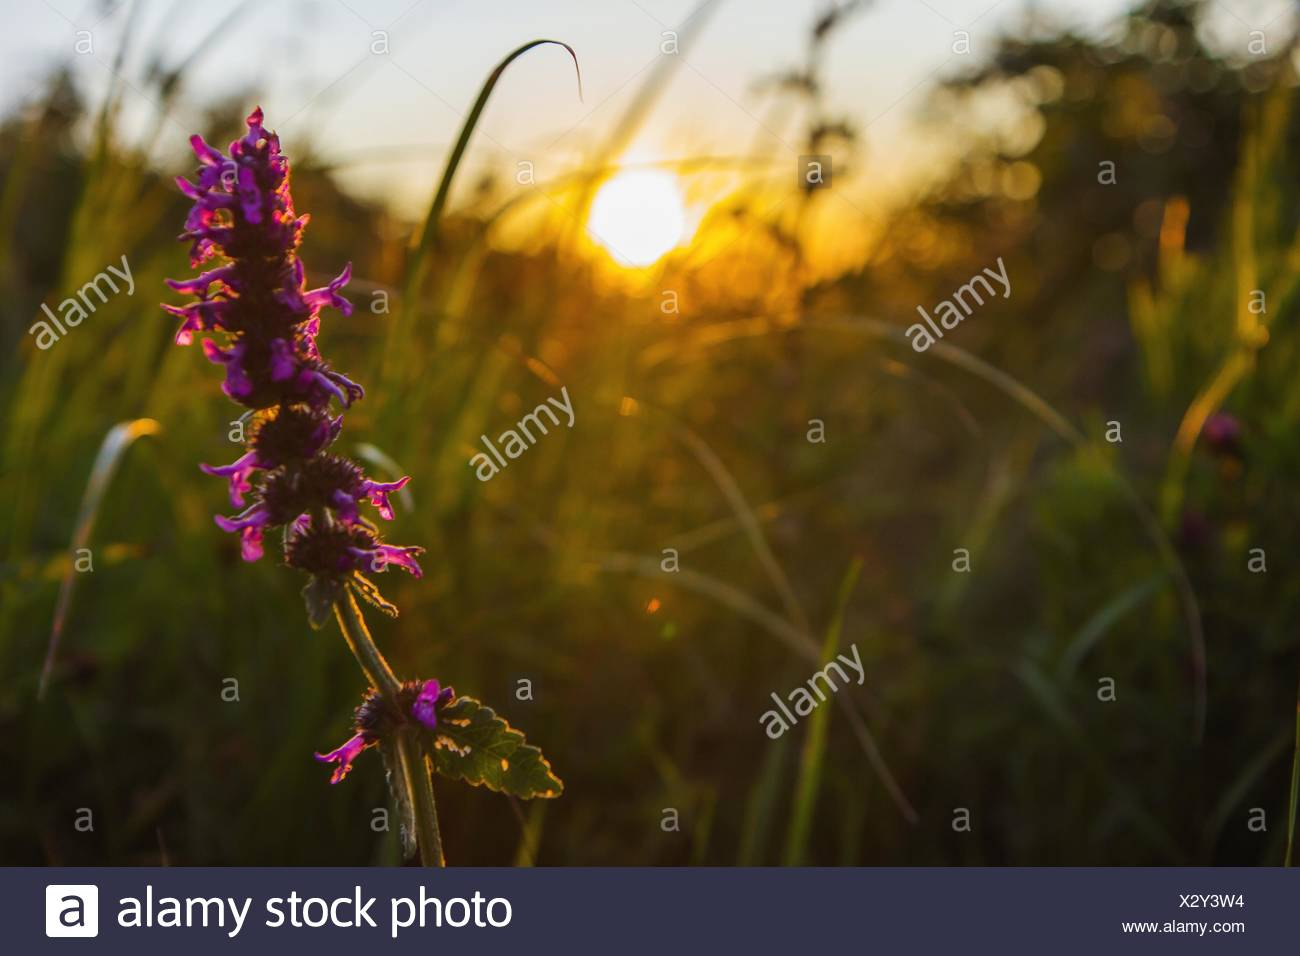 Close-Up Of Magenta Flower In Field Against Sky - Stock Image